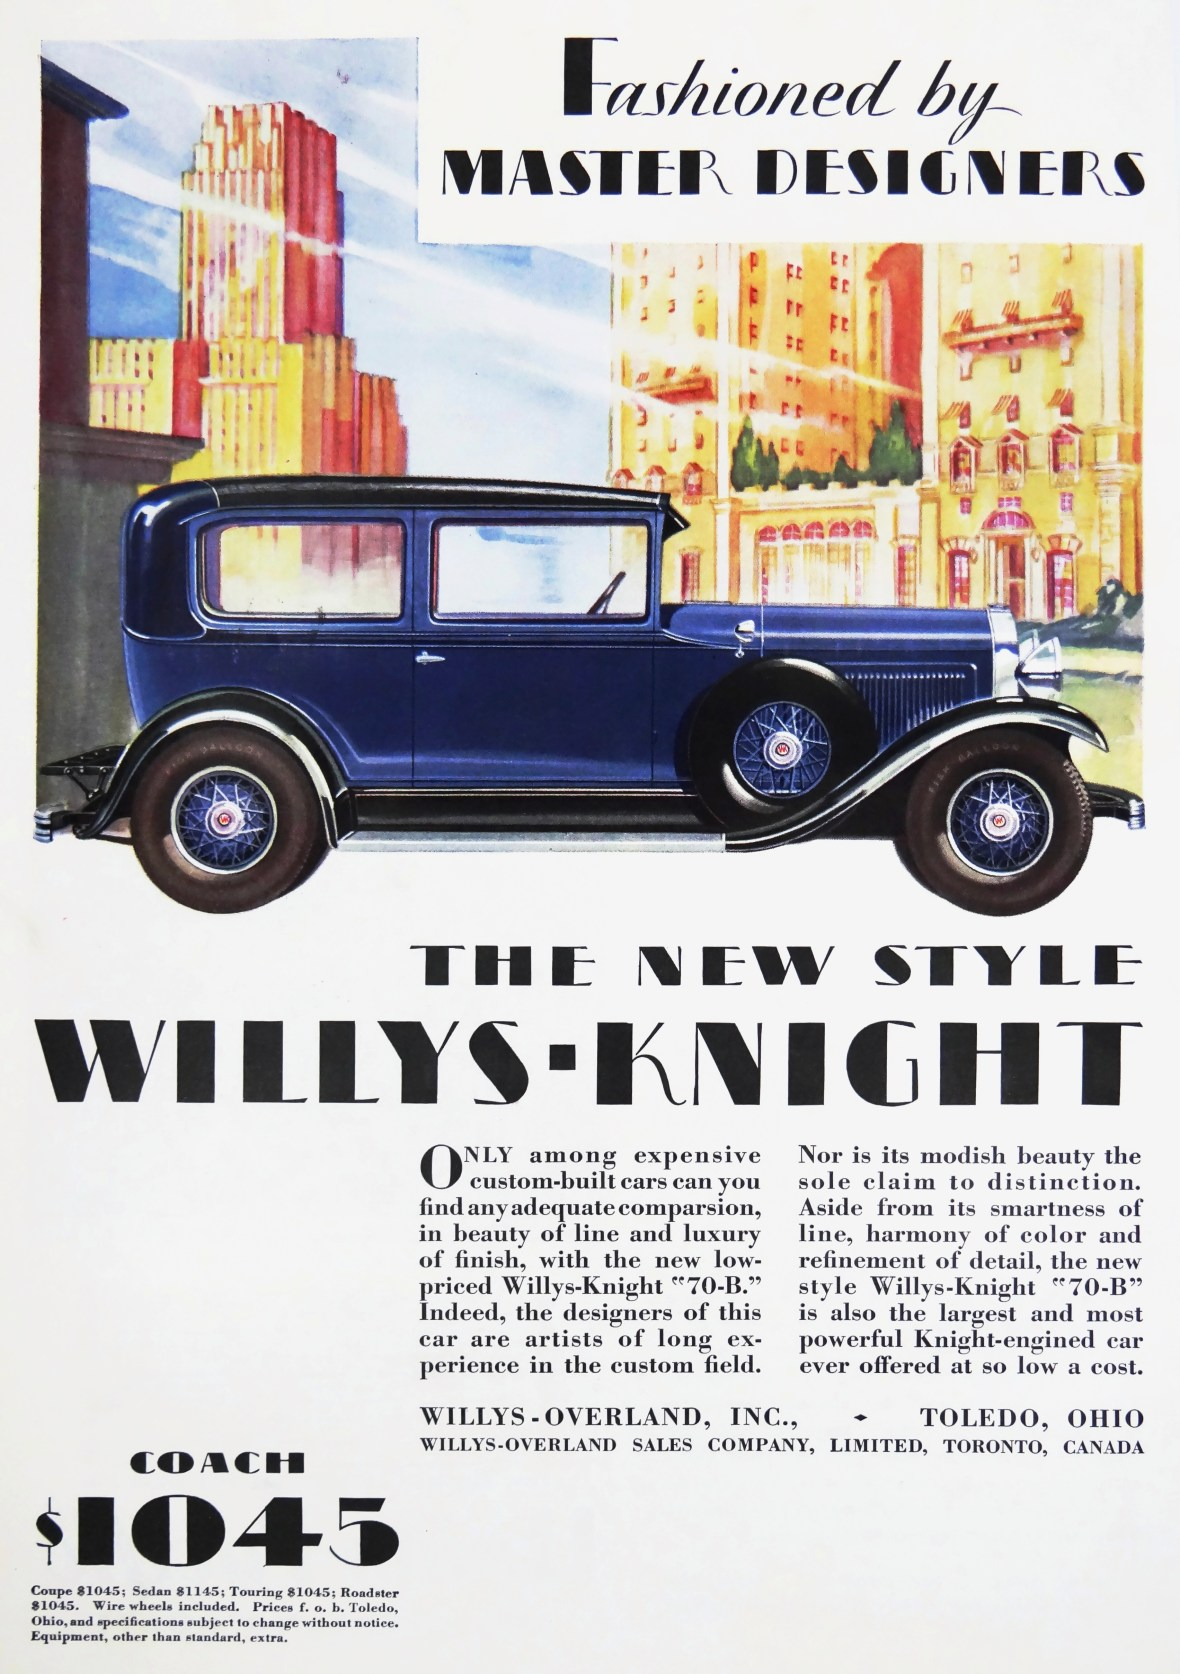 1929 Willys-Knight 70-B - published in May 1929